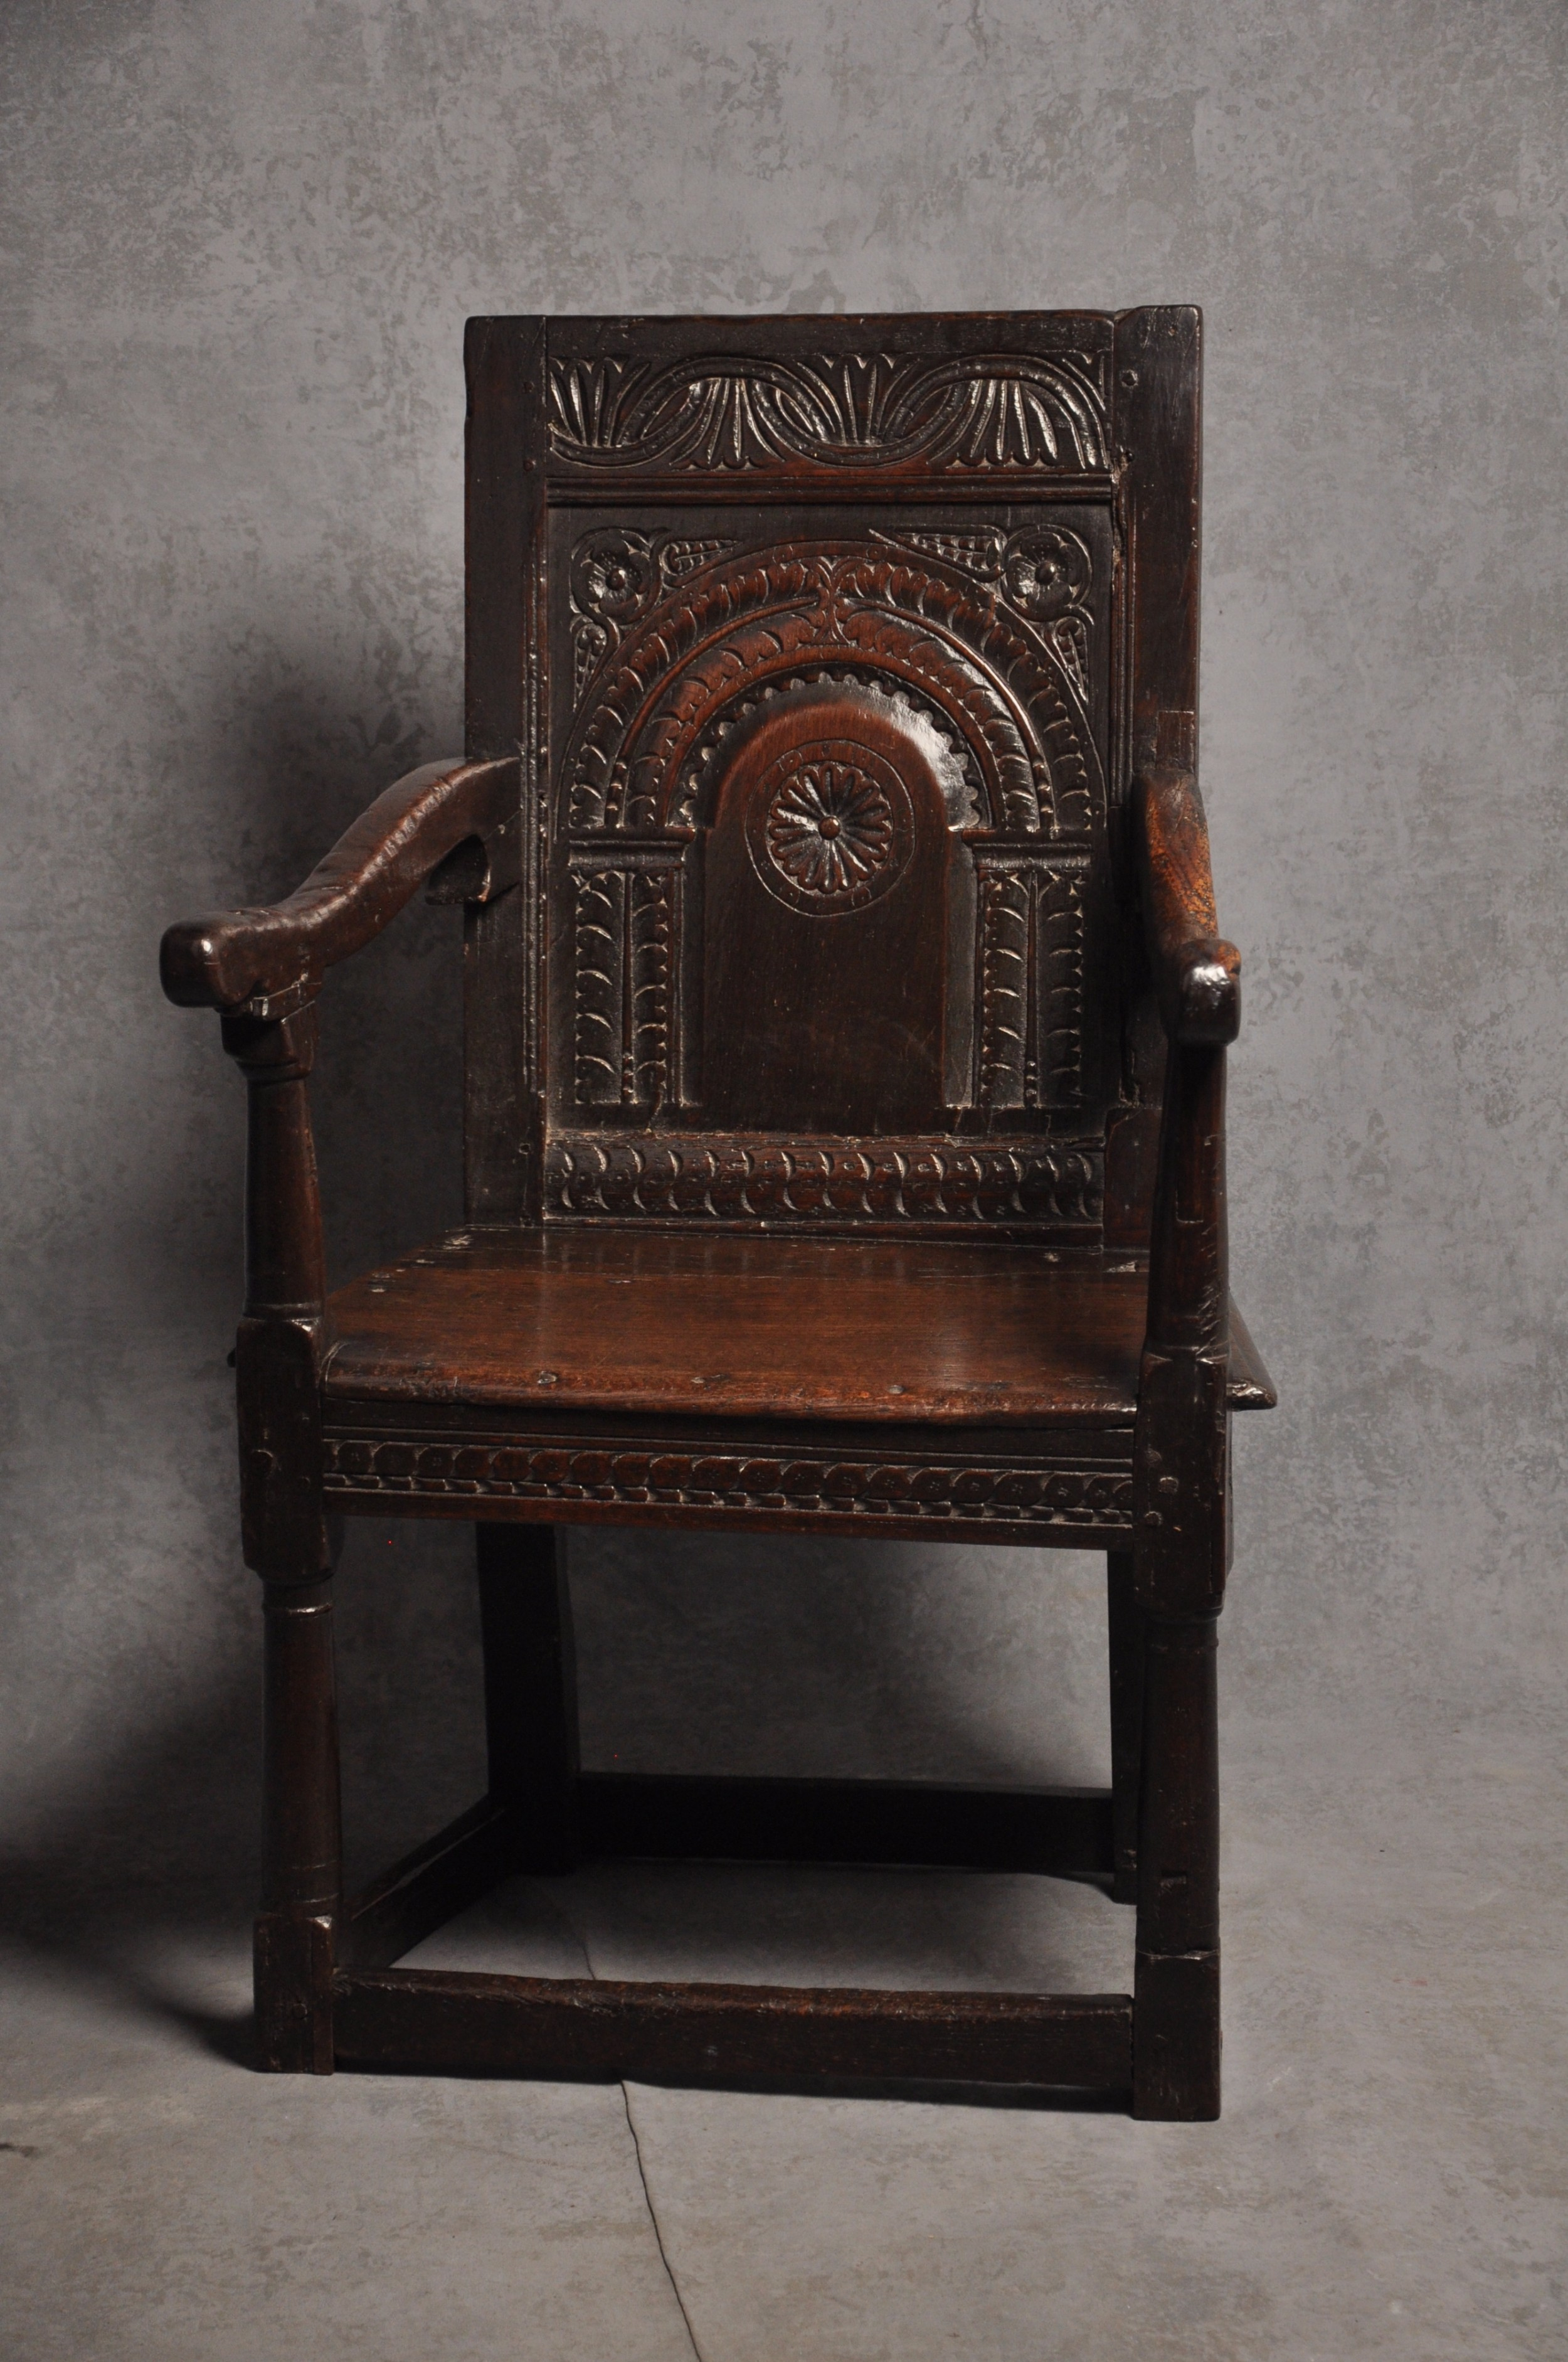 17th century oak wainscot chair